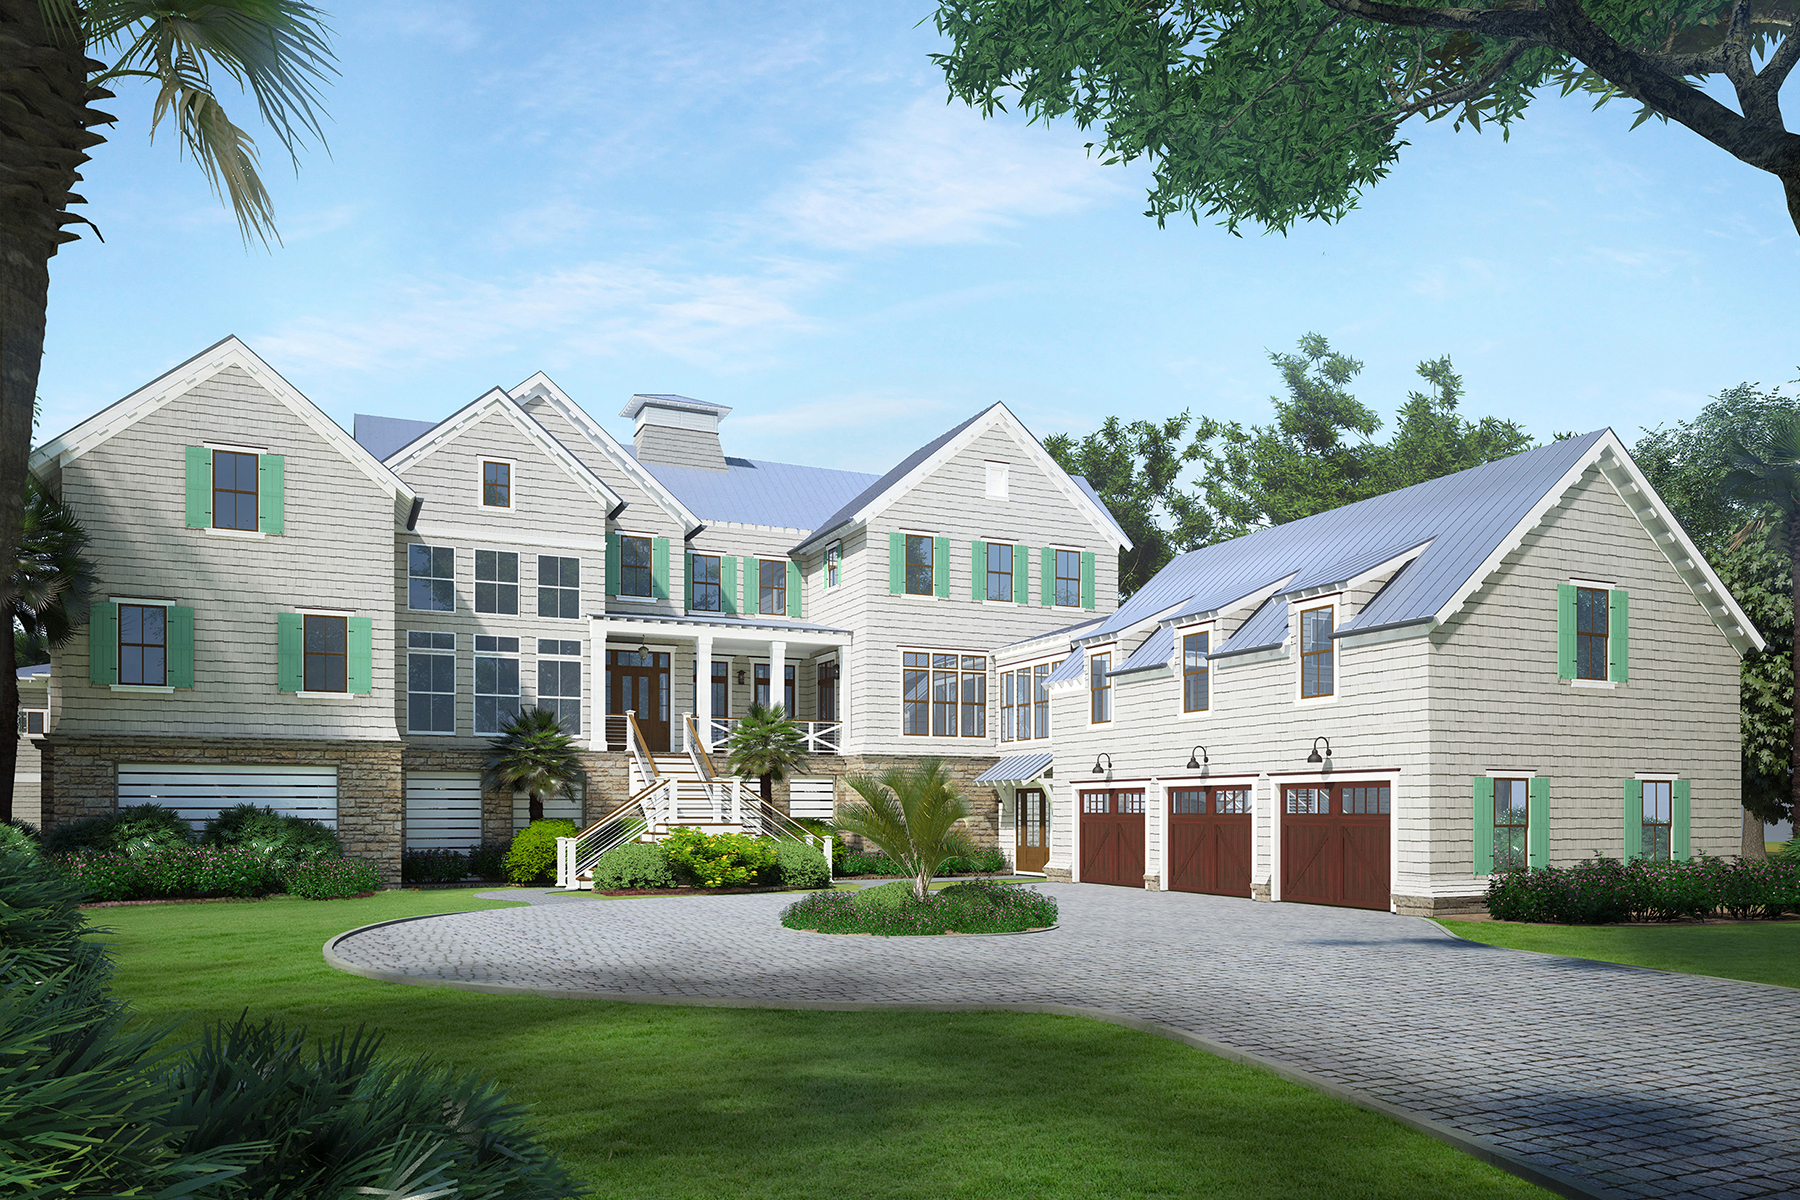 Single Family Home for Sale at 2401 Waterway Boulevard Isle Of Palms, Isle Of Palms, South Carolina, 29451 United States